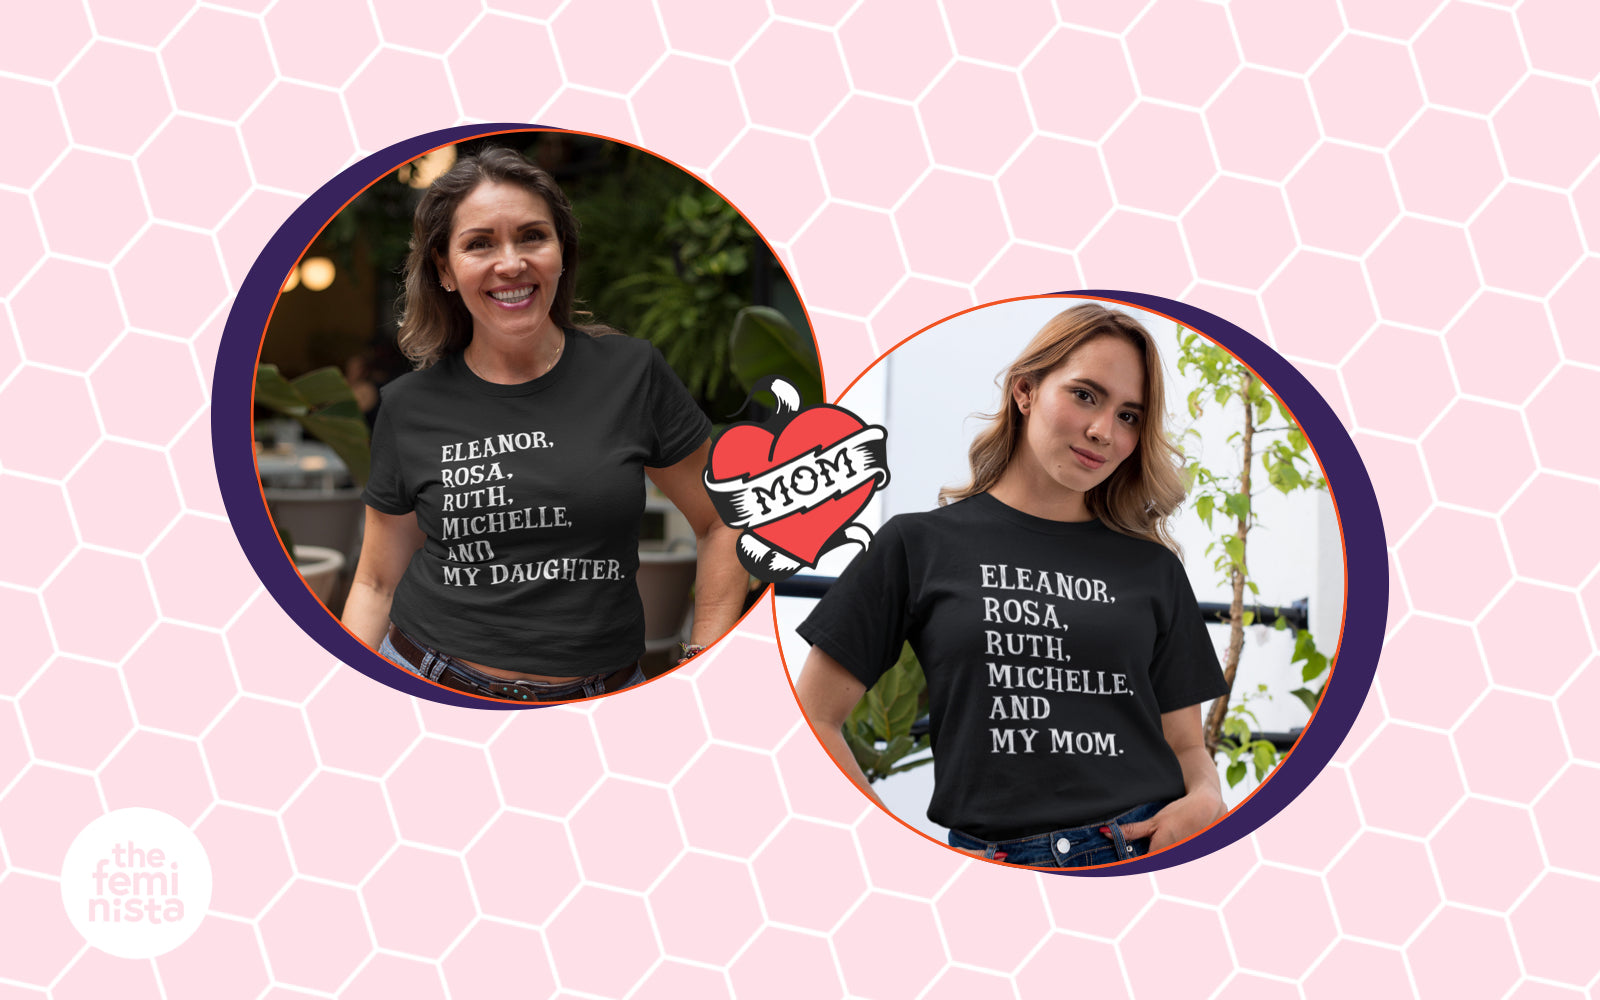 Two women wearing black feminist icon t-shirts for mother's day 2021 on a pink honeycomb background with The Feminista logo